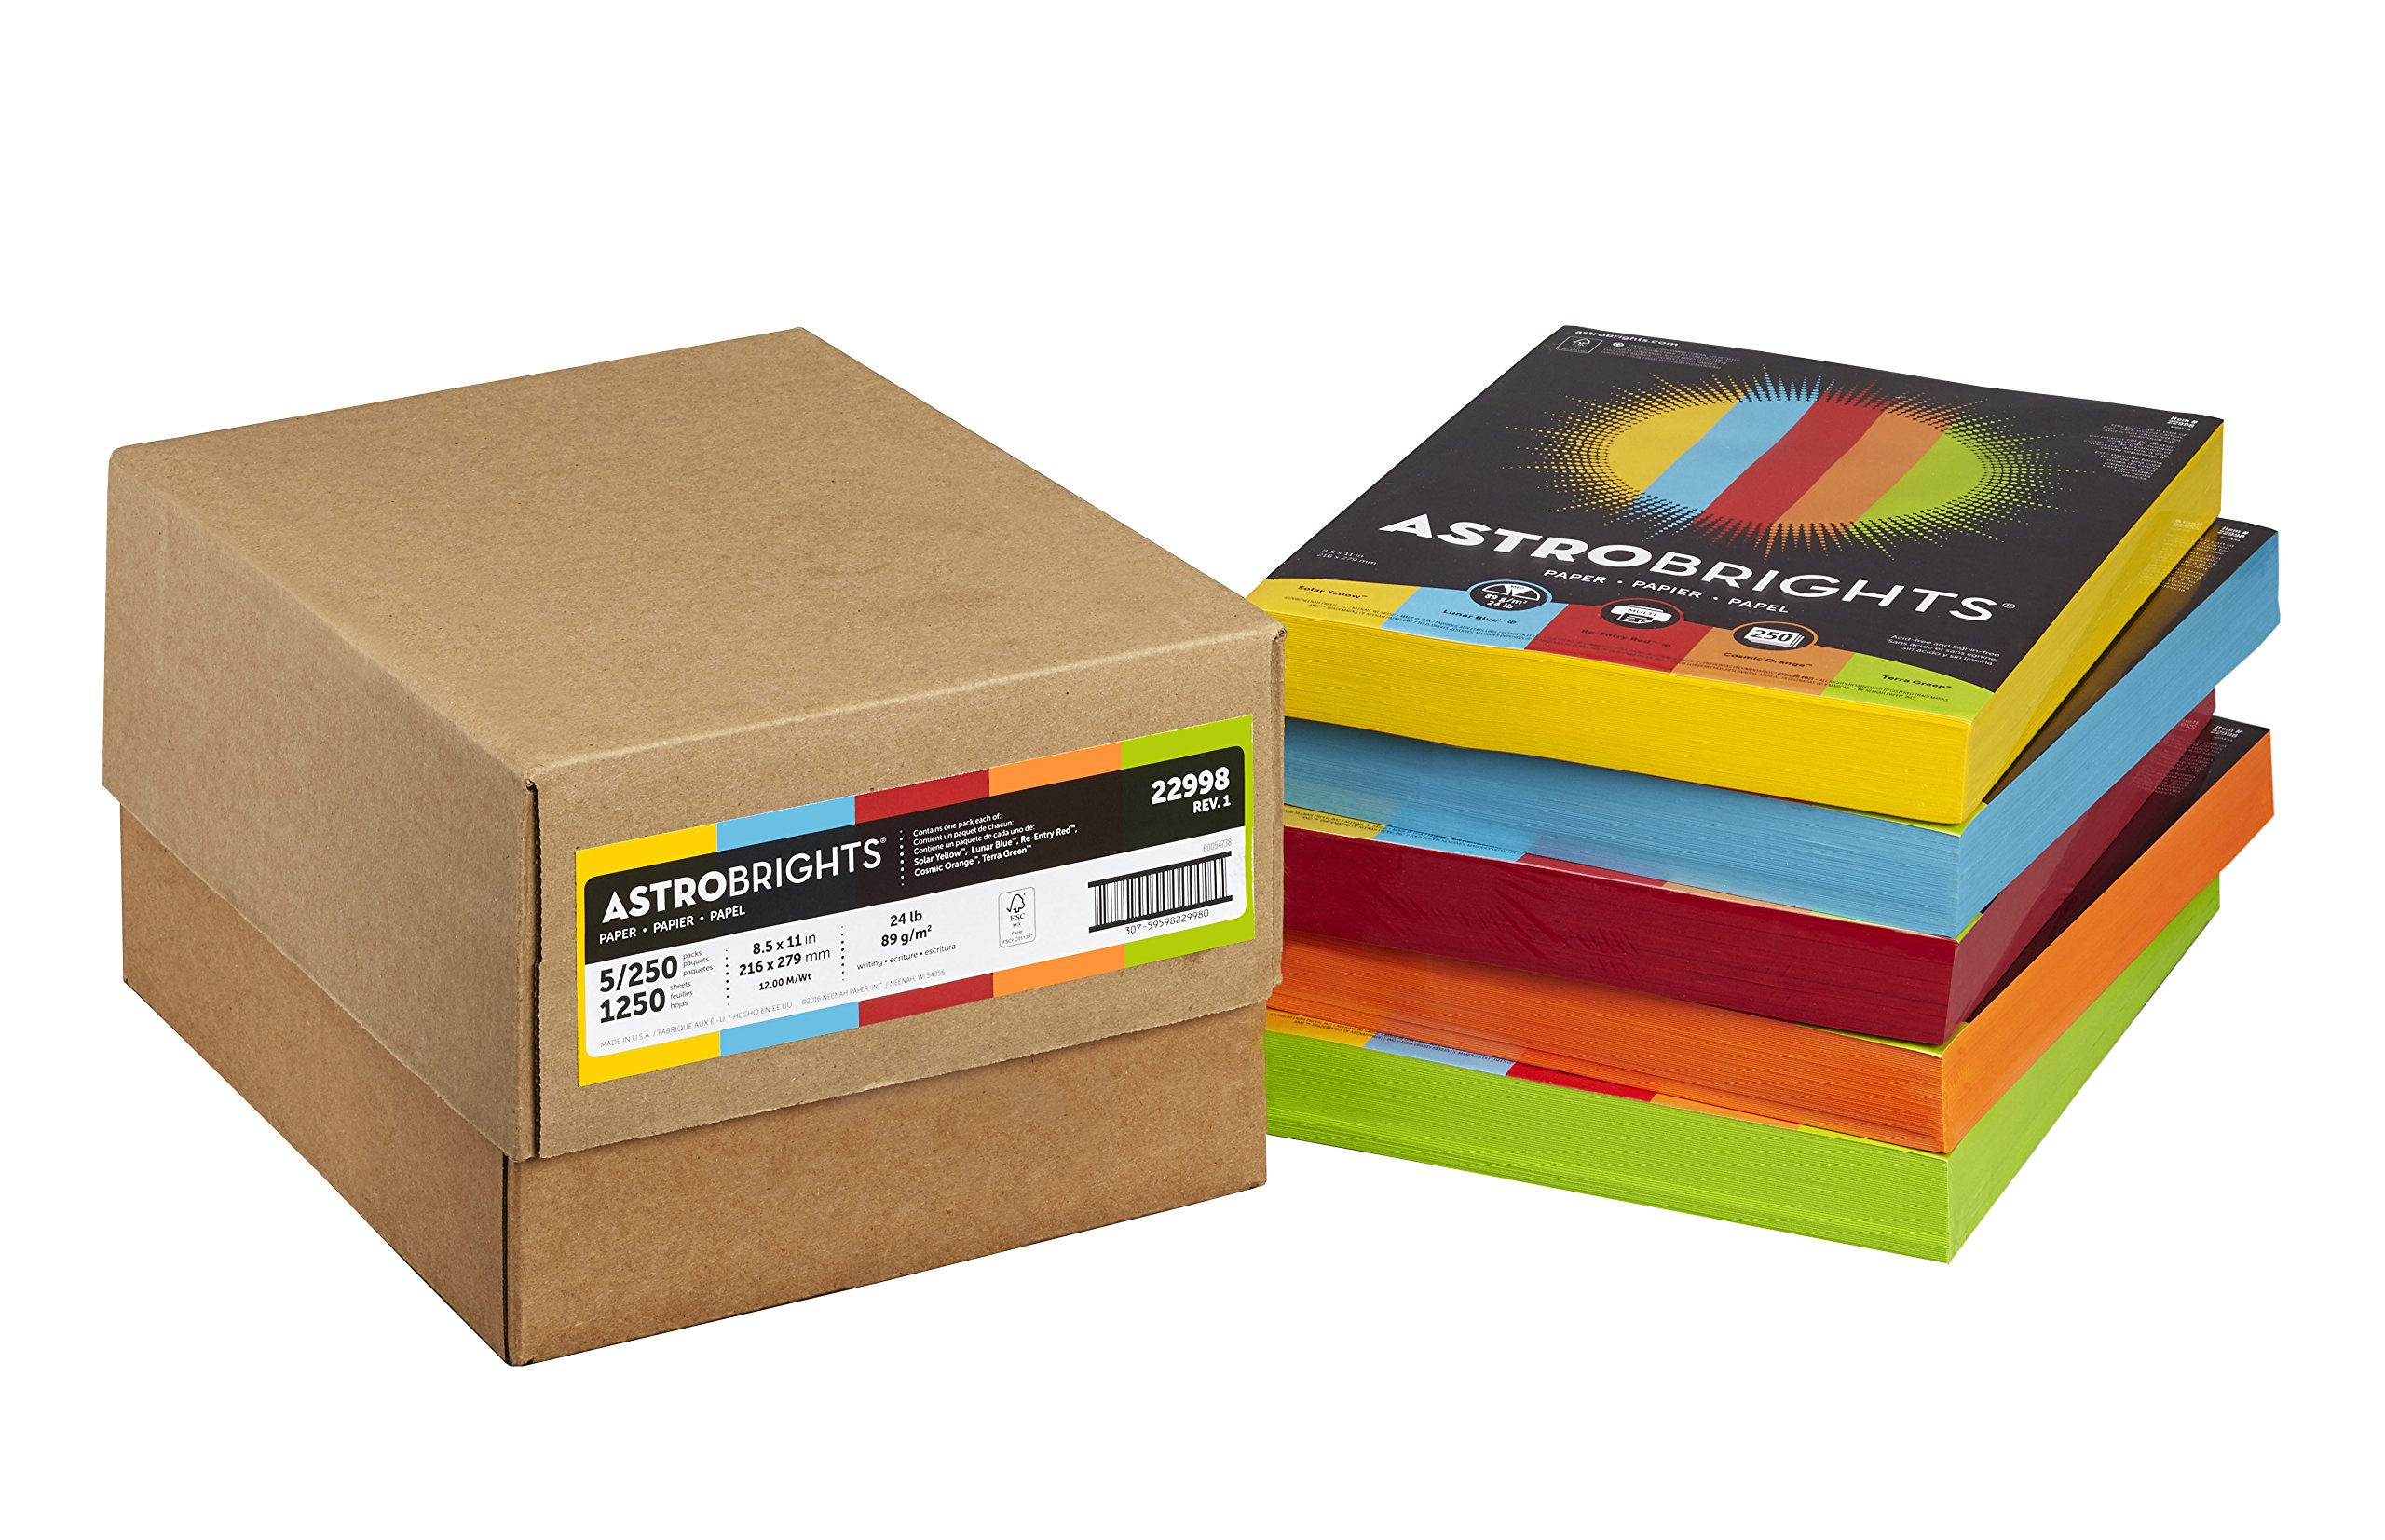 Astrobrights Color Paper, 8.5'' x 11'', 24 lb/89 gsm, Mixed Carton 5-Color Assortment, 1250 Sheets (22998) by Astrobrights